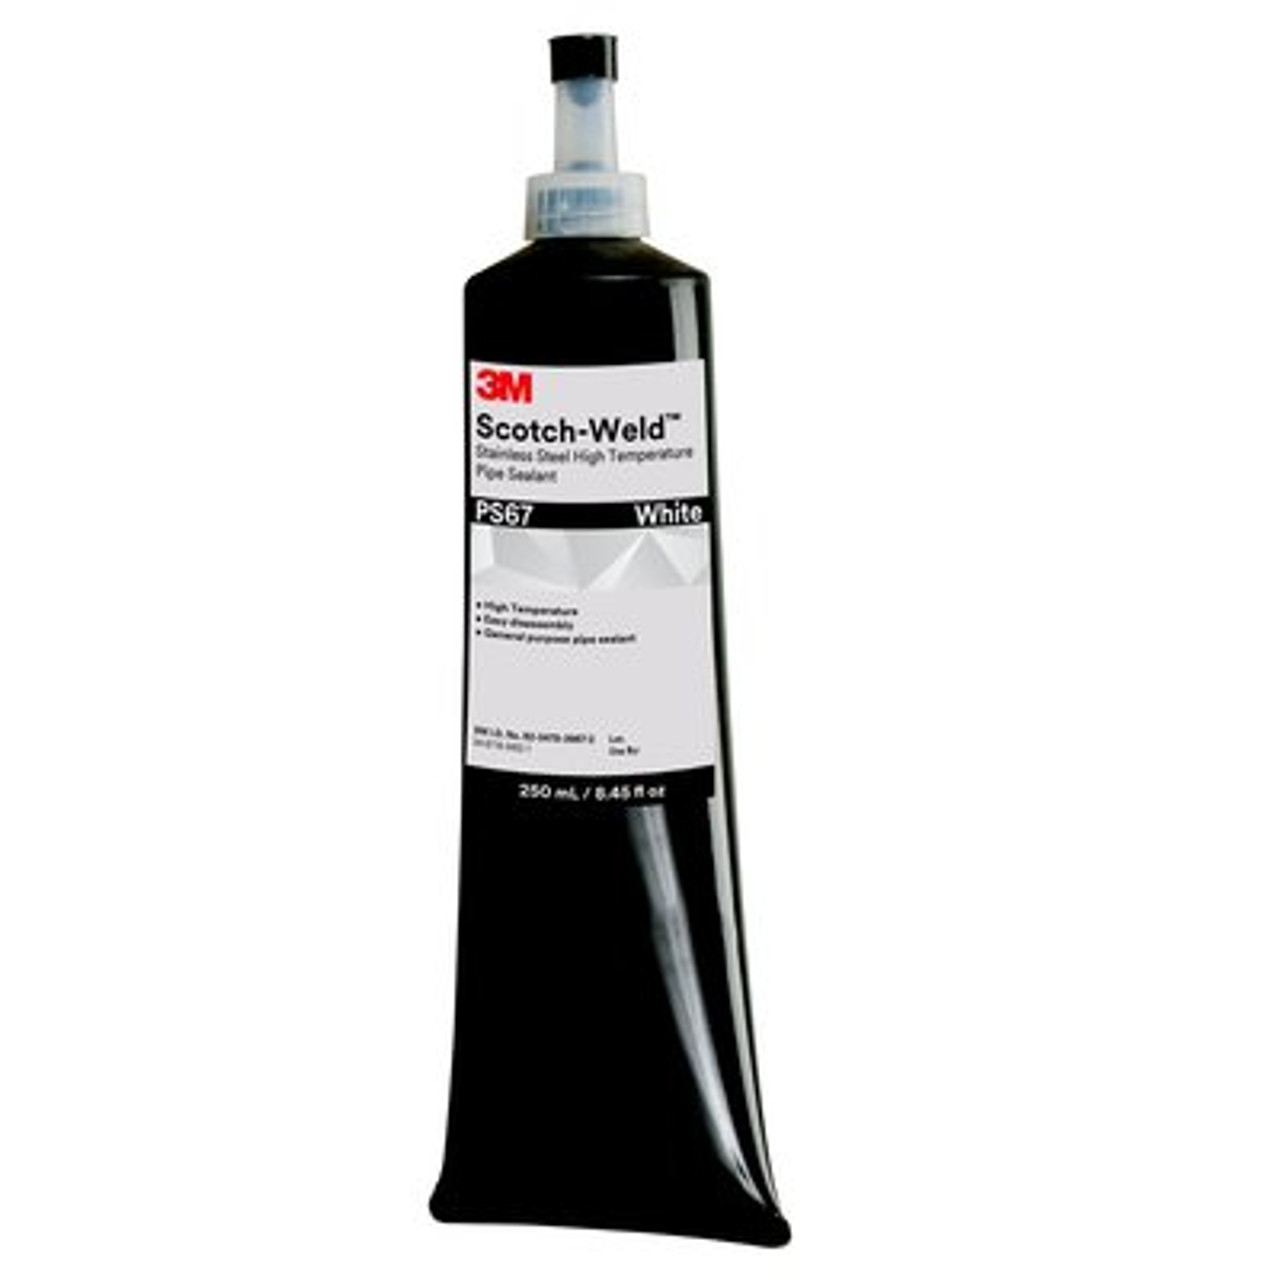 3M™ Scotch-Weld™ Stainless Steel High Temperature Pipe Sealant PS67, White, 250 mL Tube